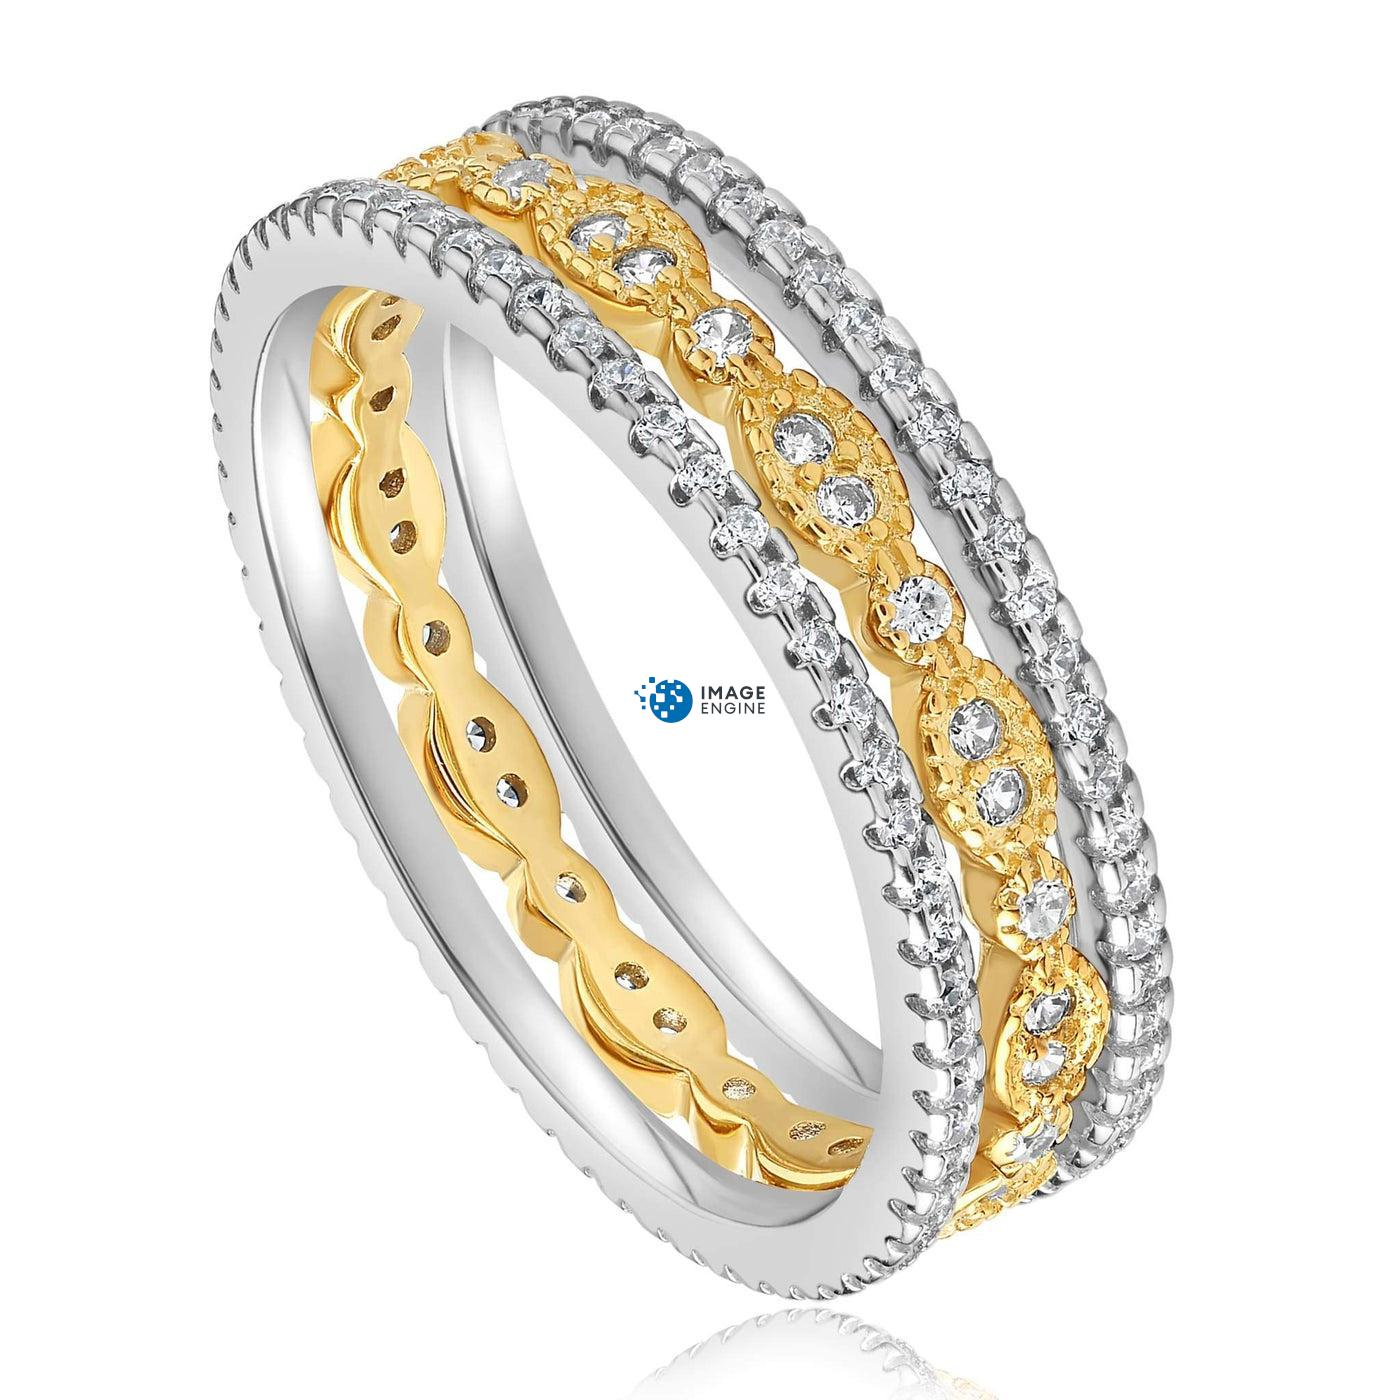 Juliana 3 Ring Set - Three Quarter View - 18K Yellow Gold Vermeil